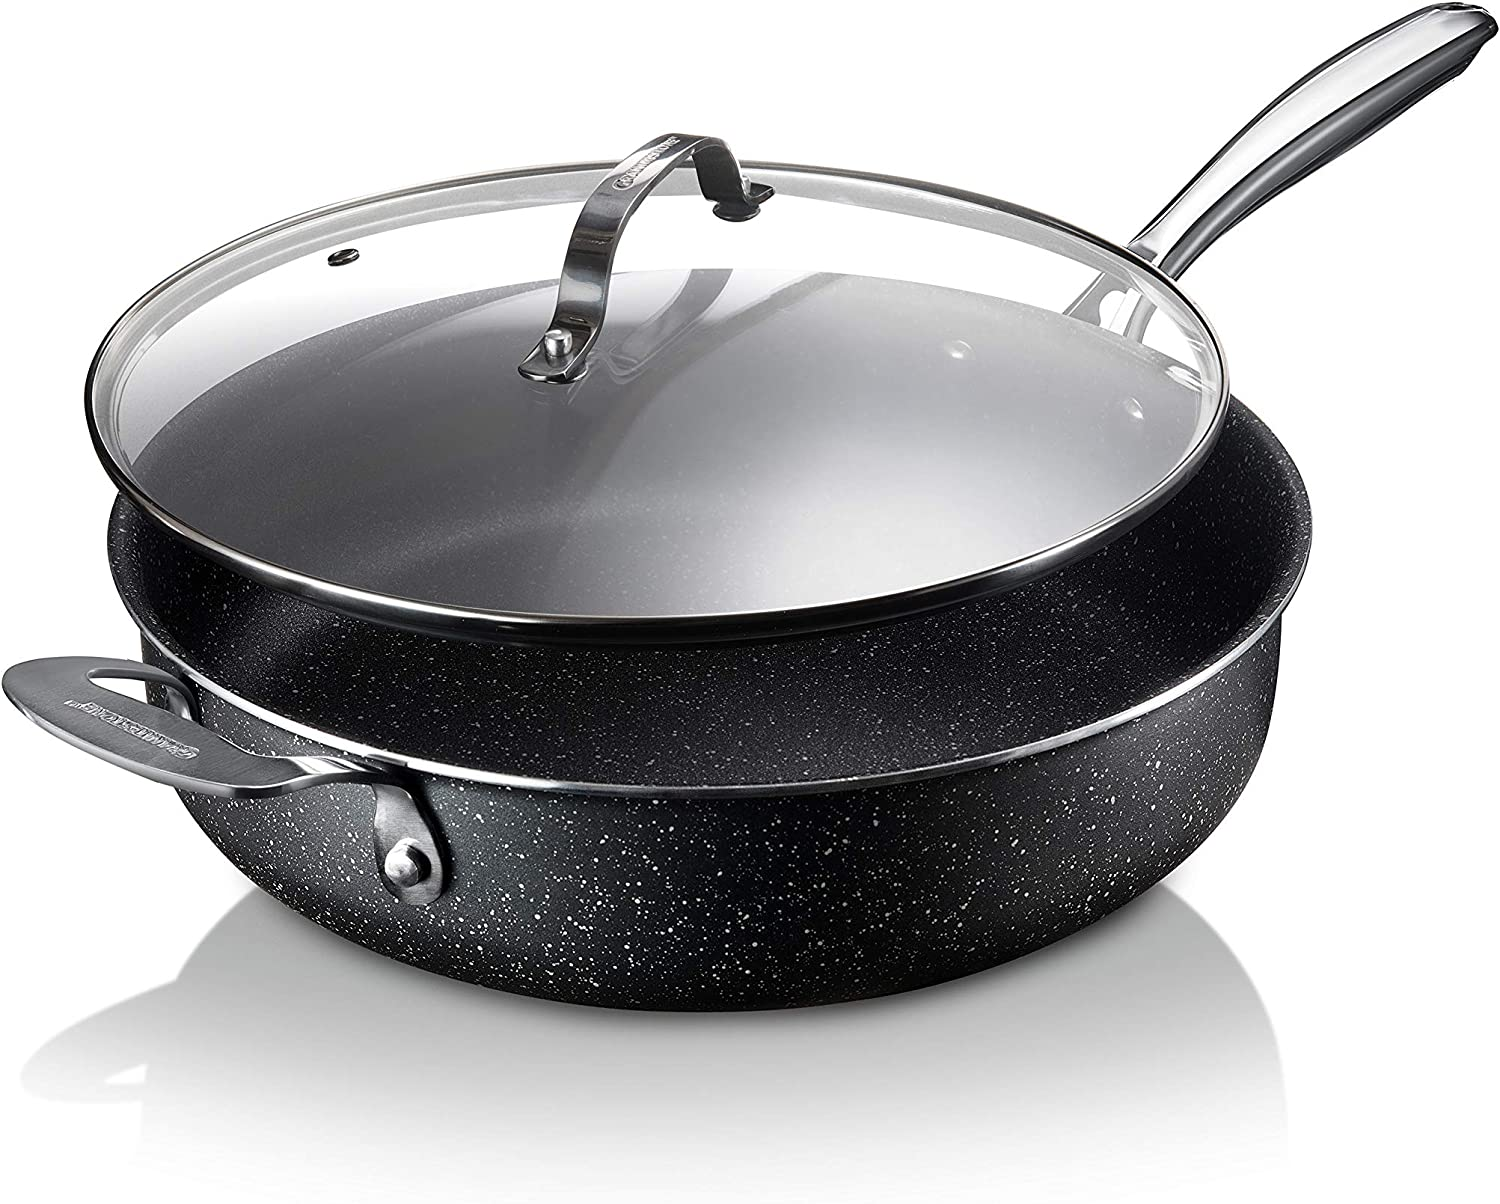 Granitestone Sauté Pan 5.5 Quart Multipurpose Nonstick Jumbo Cooker with Glass Lid, Stainless Steel Handle & Helper Handle, Oven & Dishwasher Safe, 100% PFOA FREE, Large, Black